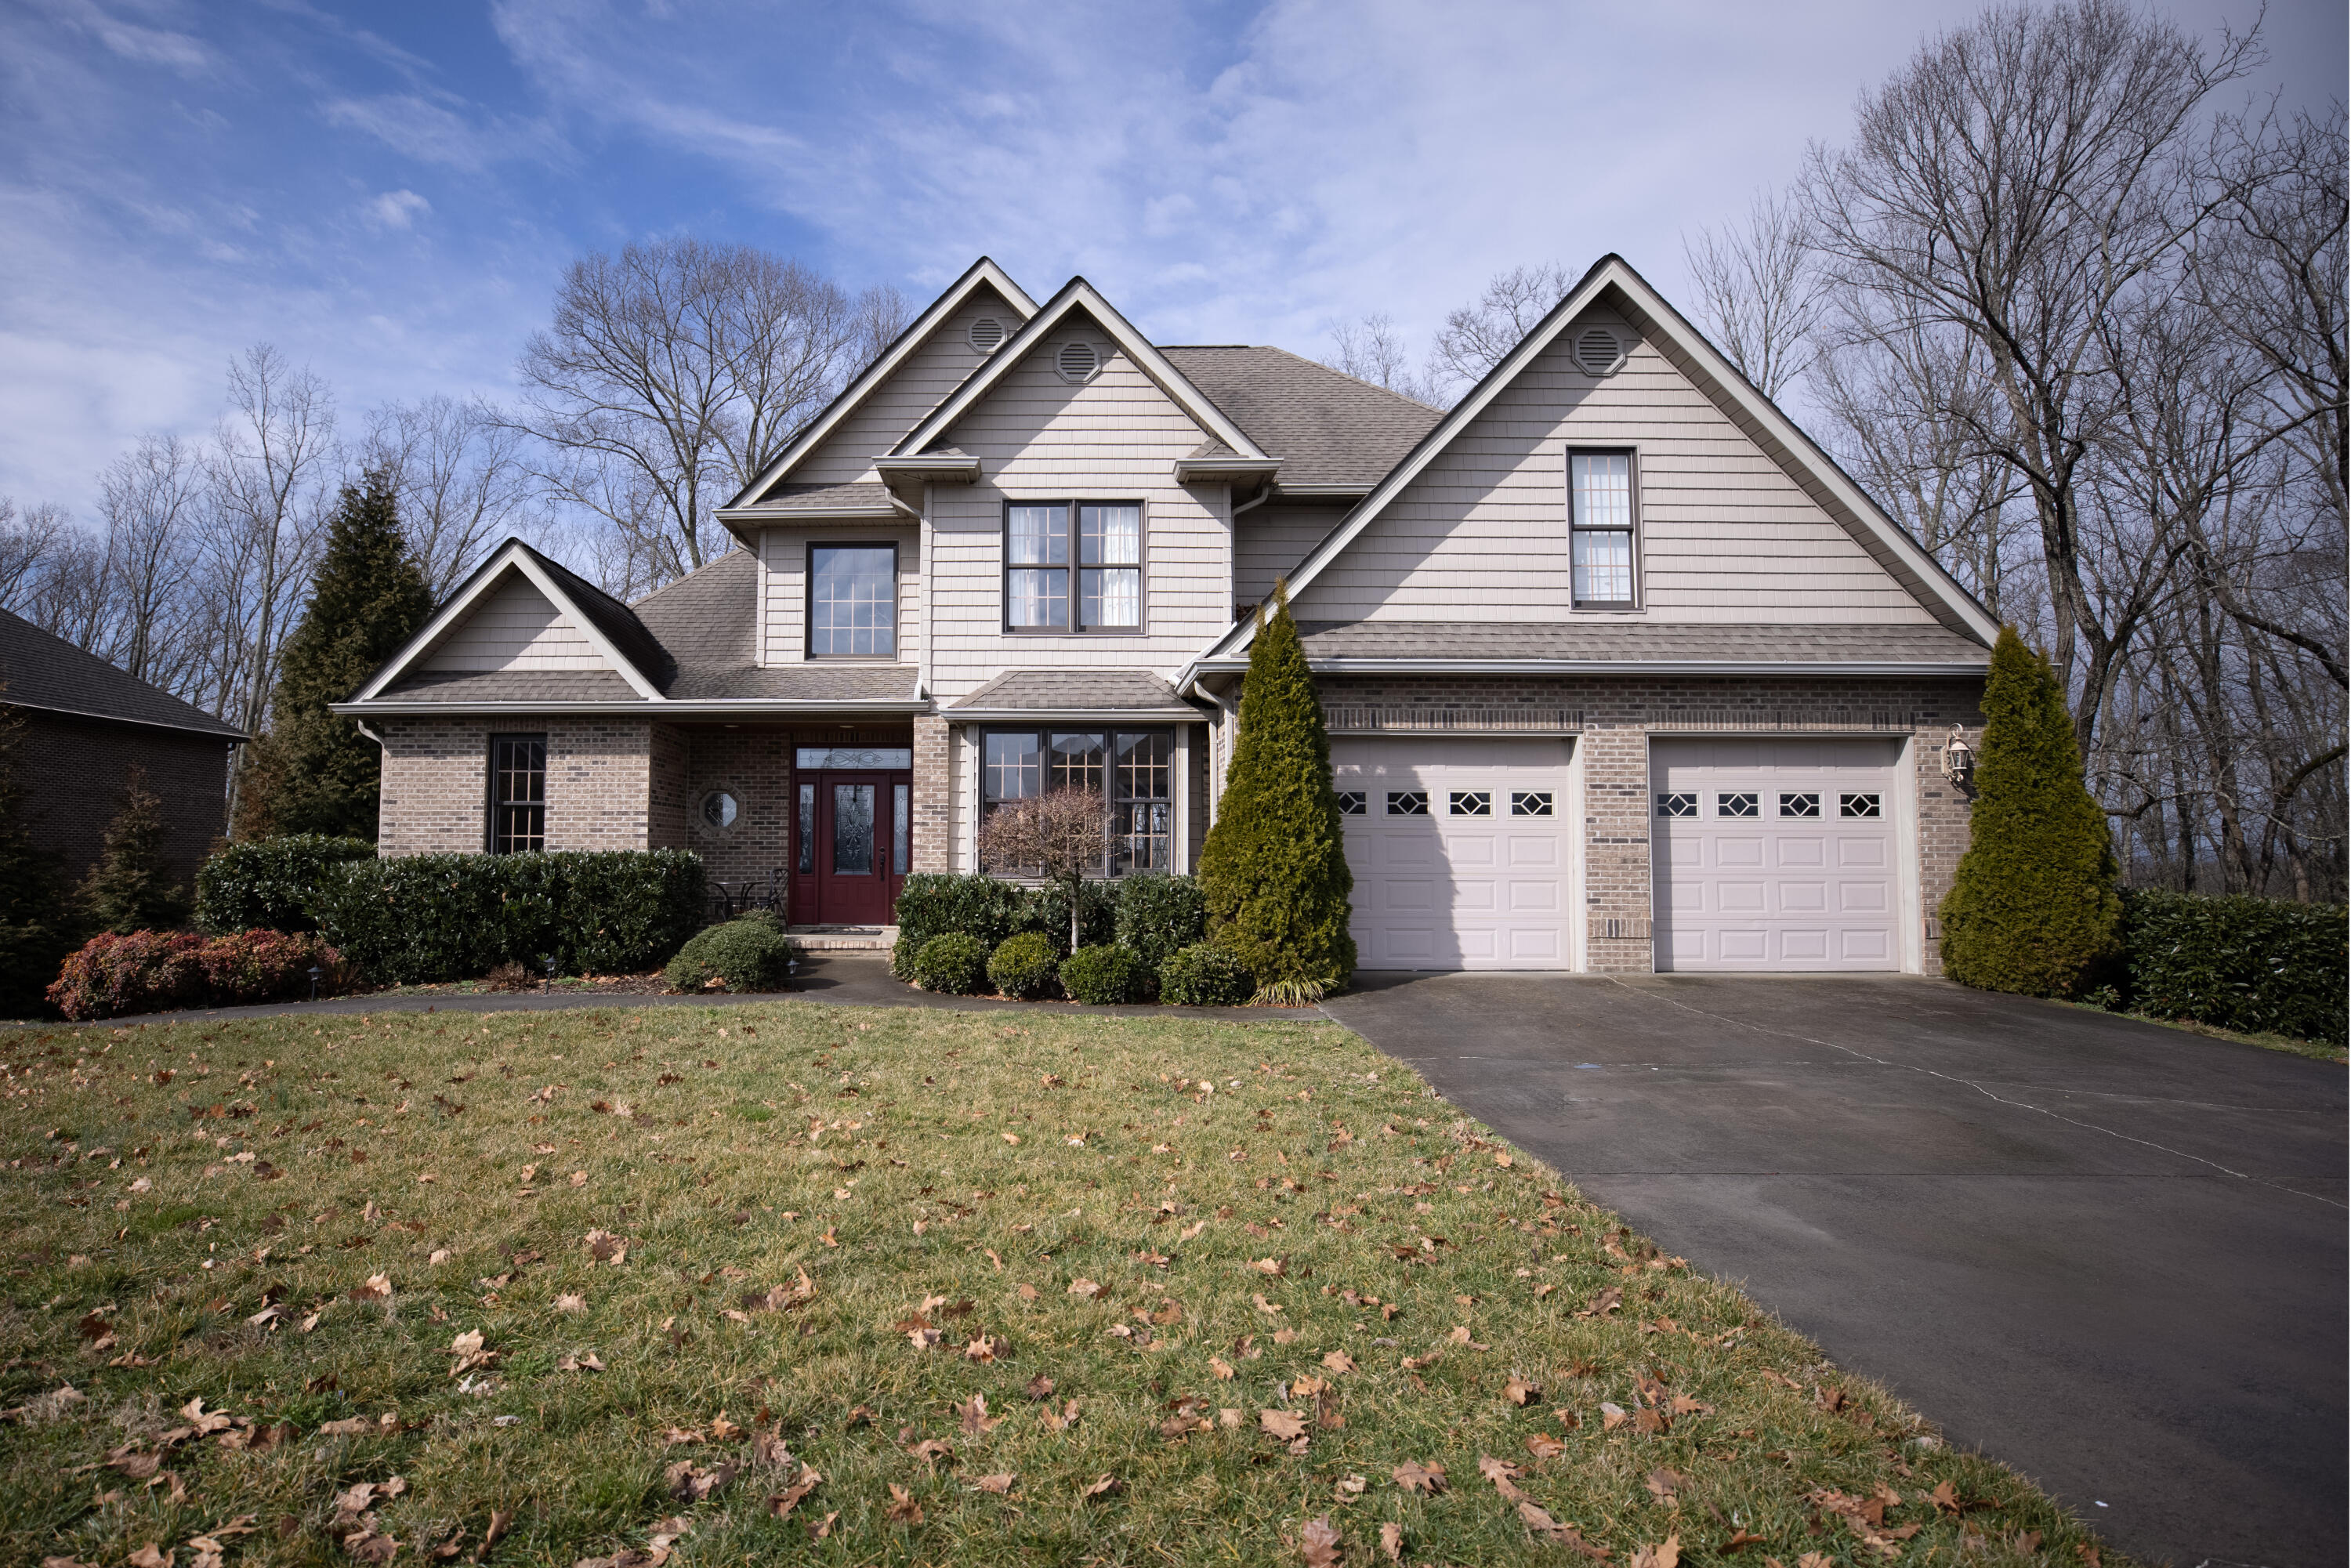 1142 Cliffview Circle, Gray, Tennessee 37615, 5 Bedrooms Bedrooms, ,4 BathroomsBathrooms,Single Family,For Sale,1142 Cliffview Circle,2,9918909